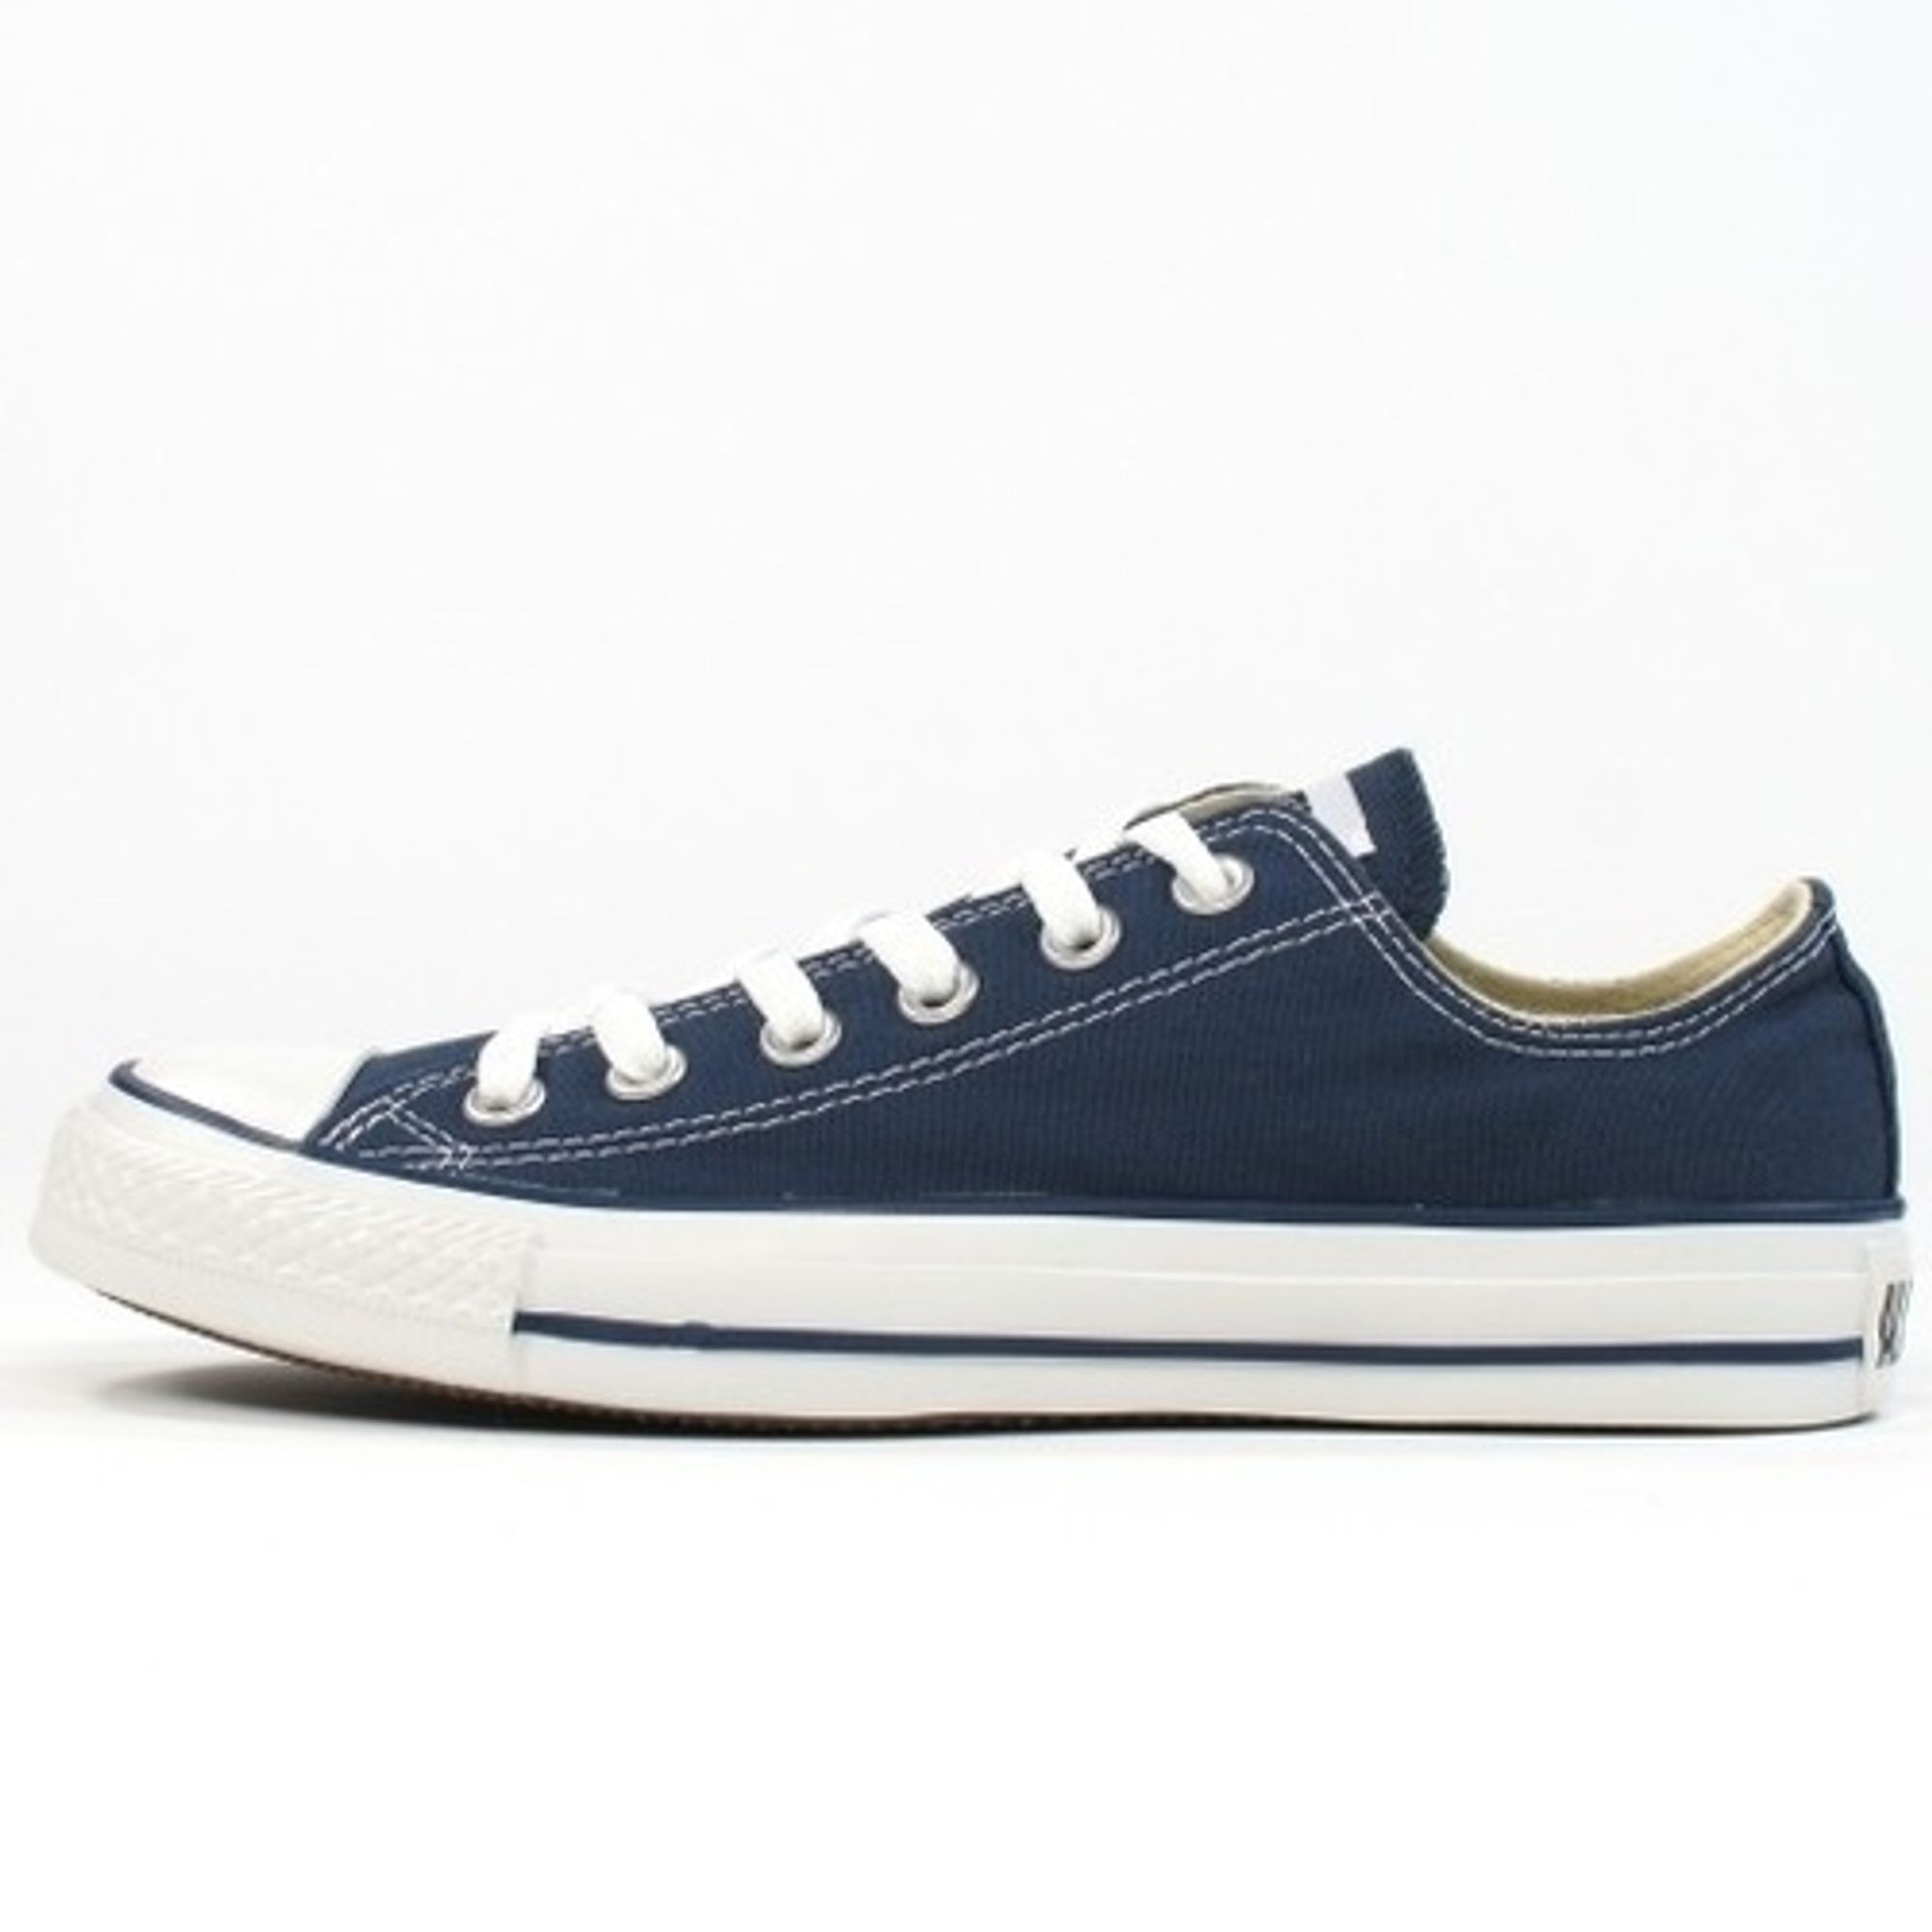 Converse Herren Schuhe All Star Ox Blau M9697C Sneakers Blau Gr. 42,5 | starlabels outdoor lifestyle leder